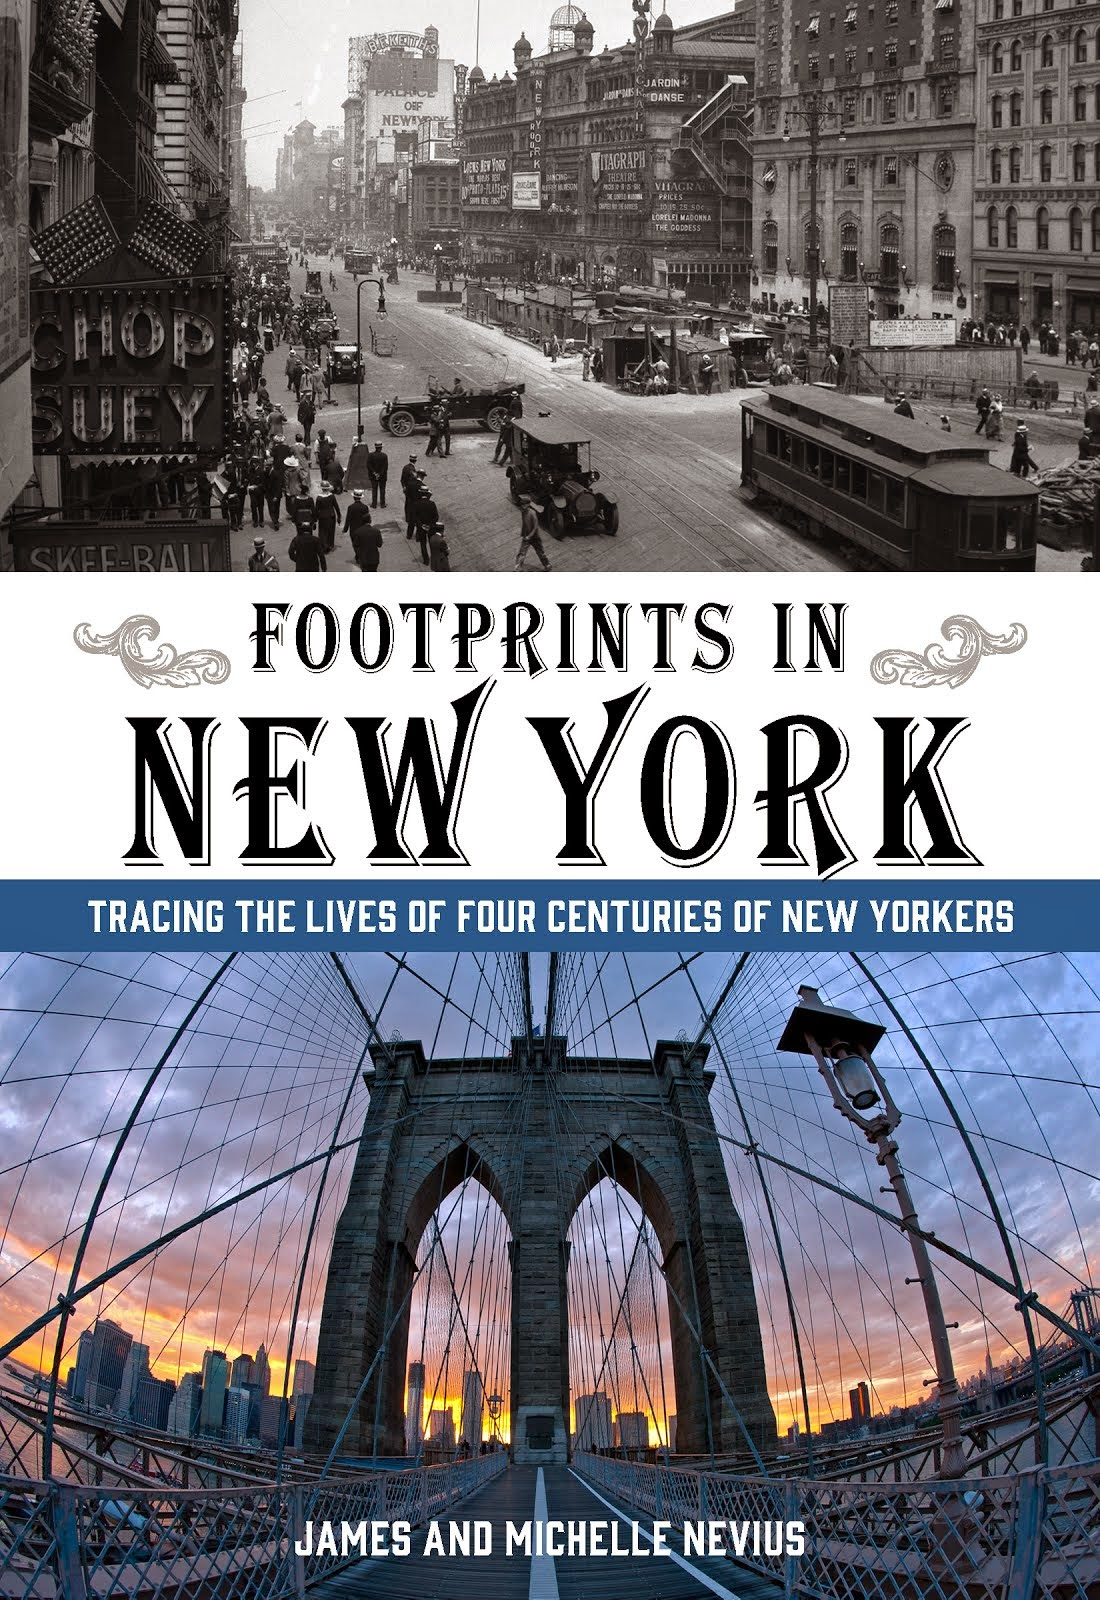 Footprints in New York